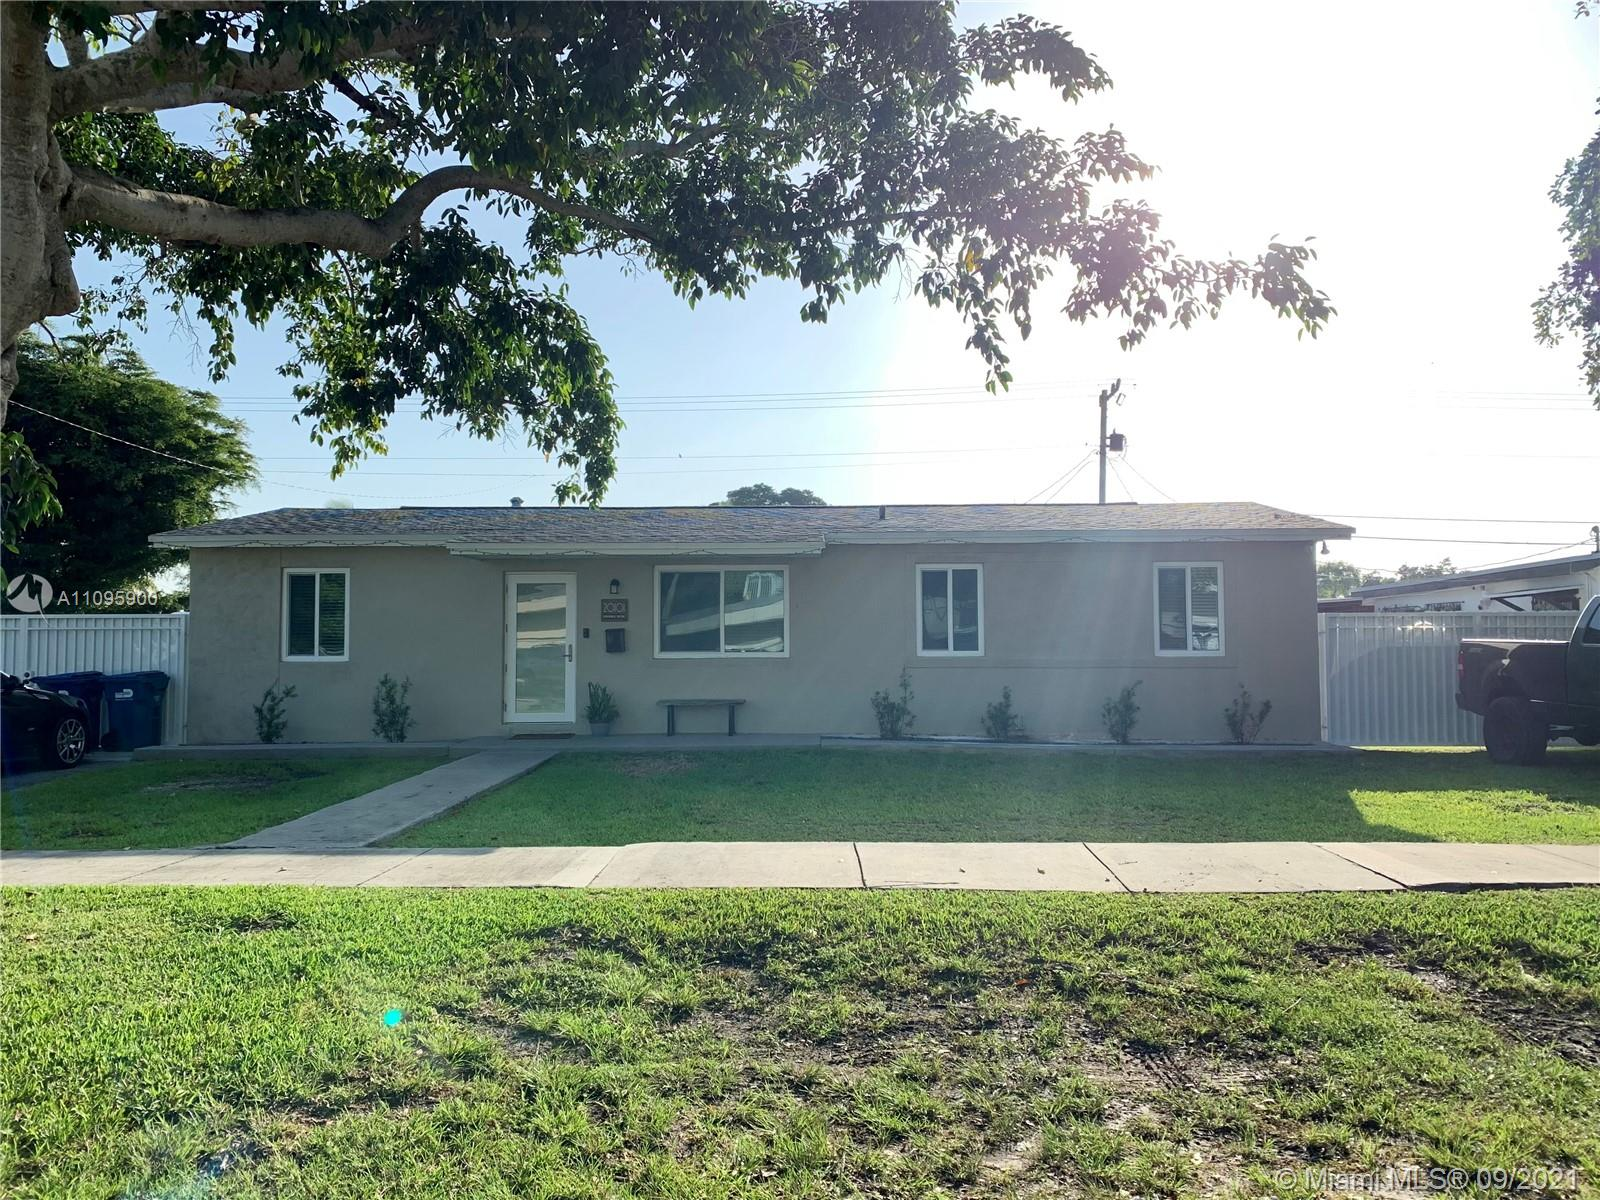 Newly renovated 3 bedroom 2 bath home. Plenty of yard space for boats, Rv, and cars. Please contact agent for showing instructions.